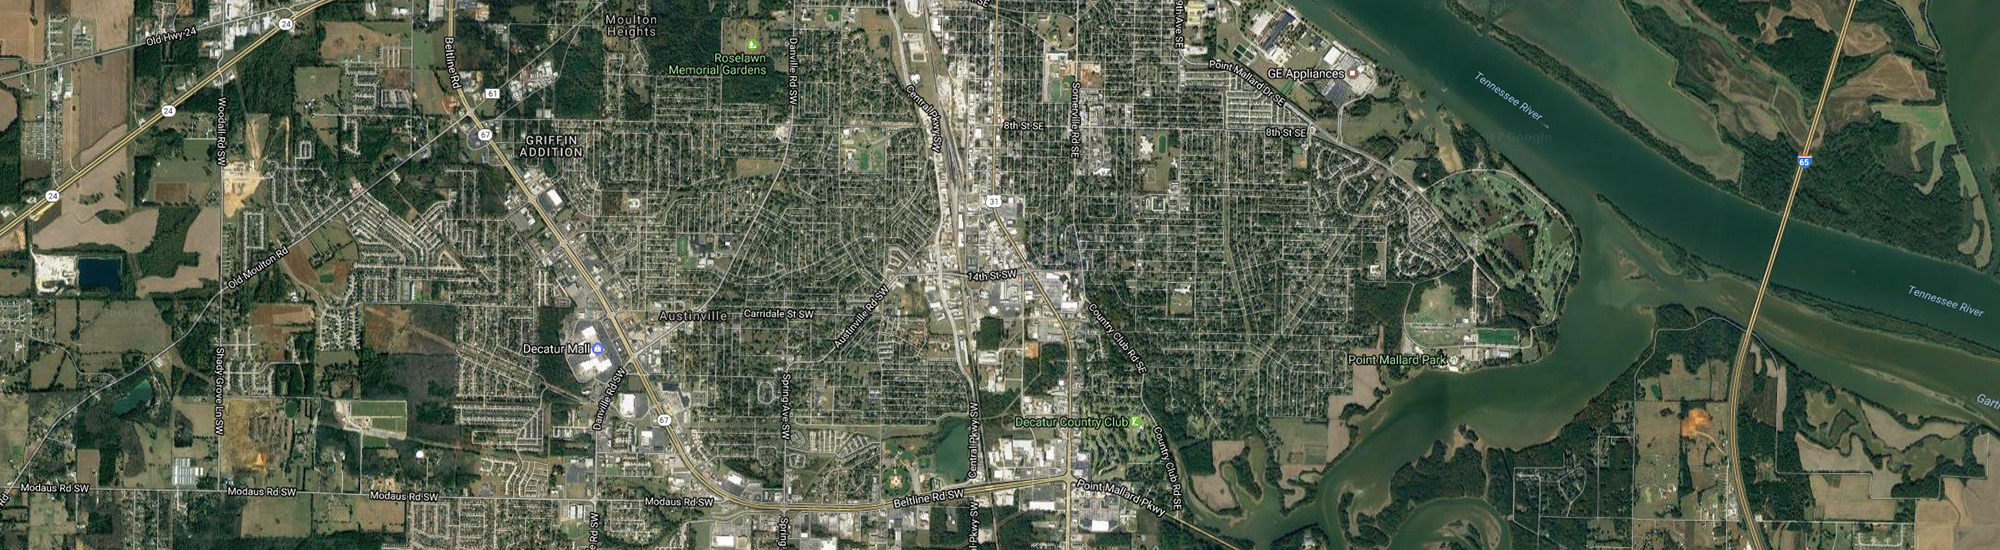 Geographic Information Systems - City of Decatur, Alabama